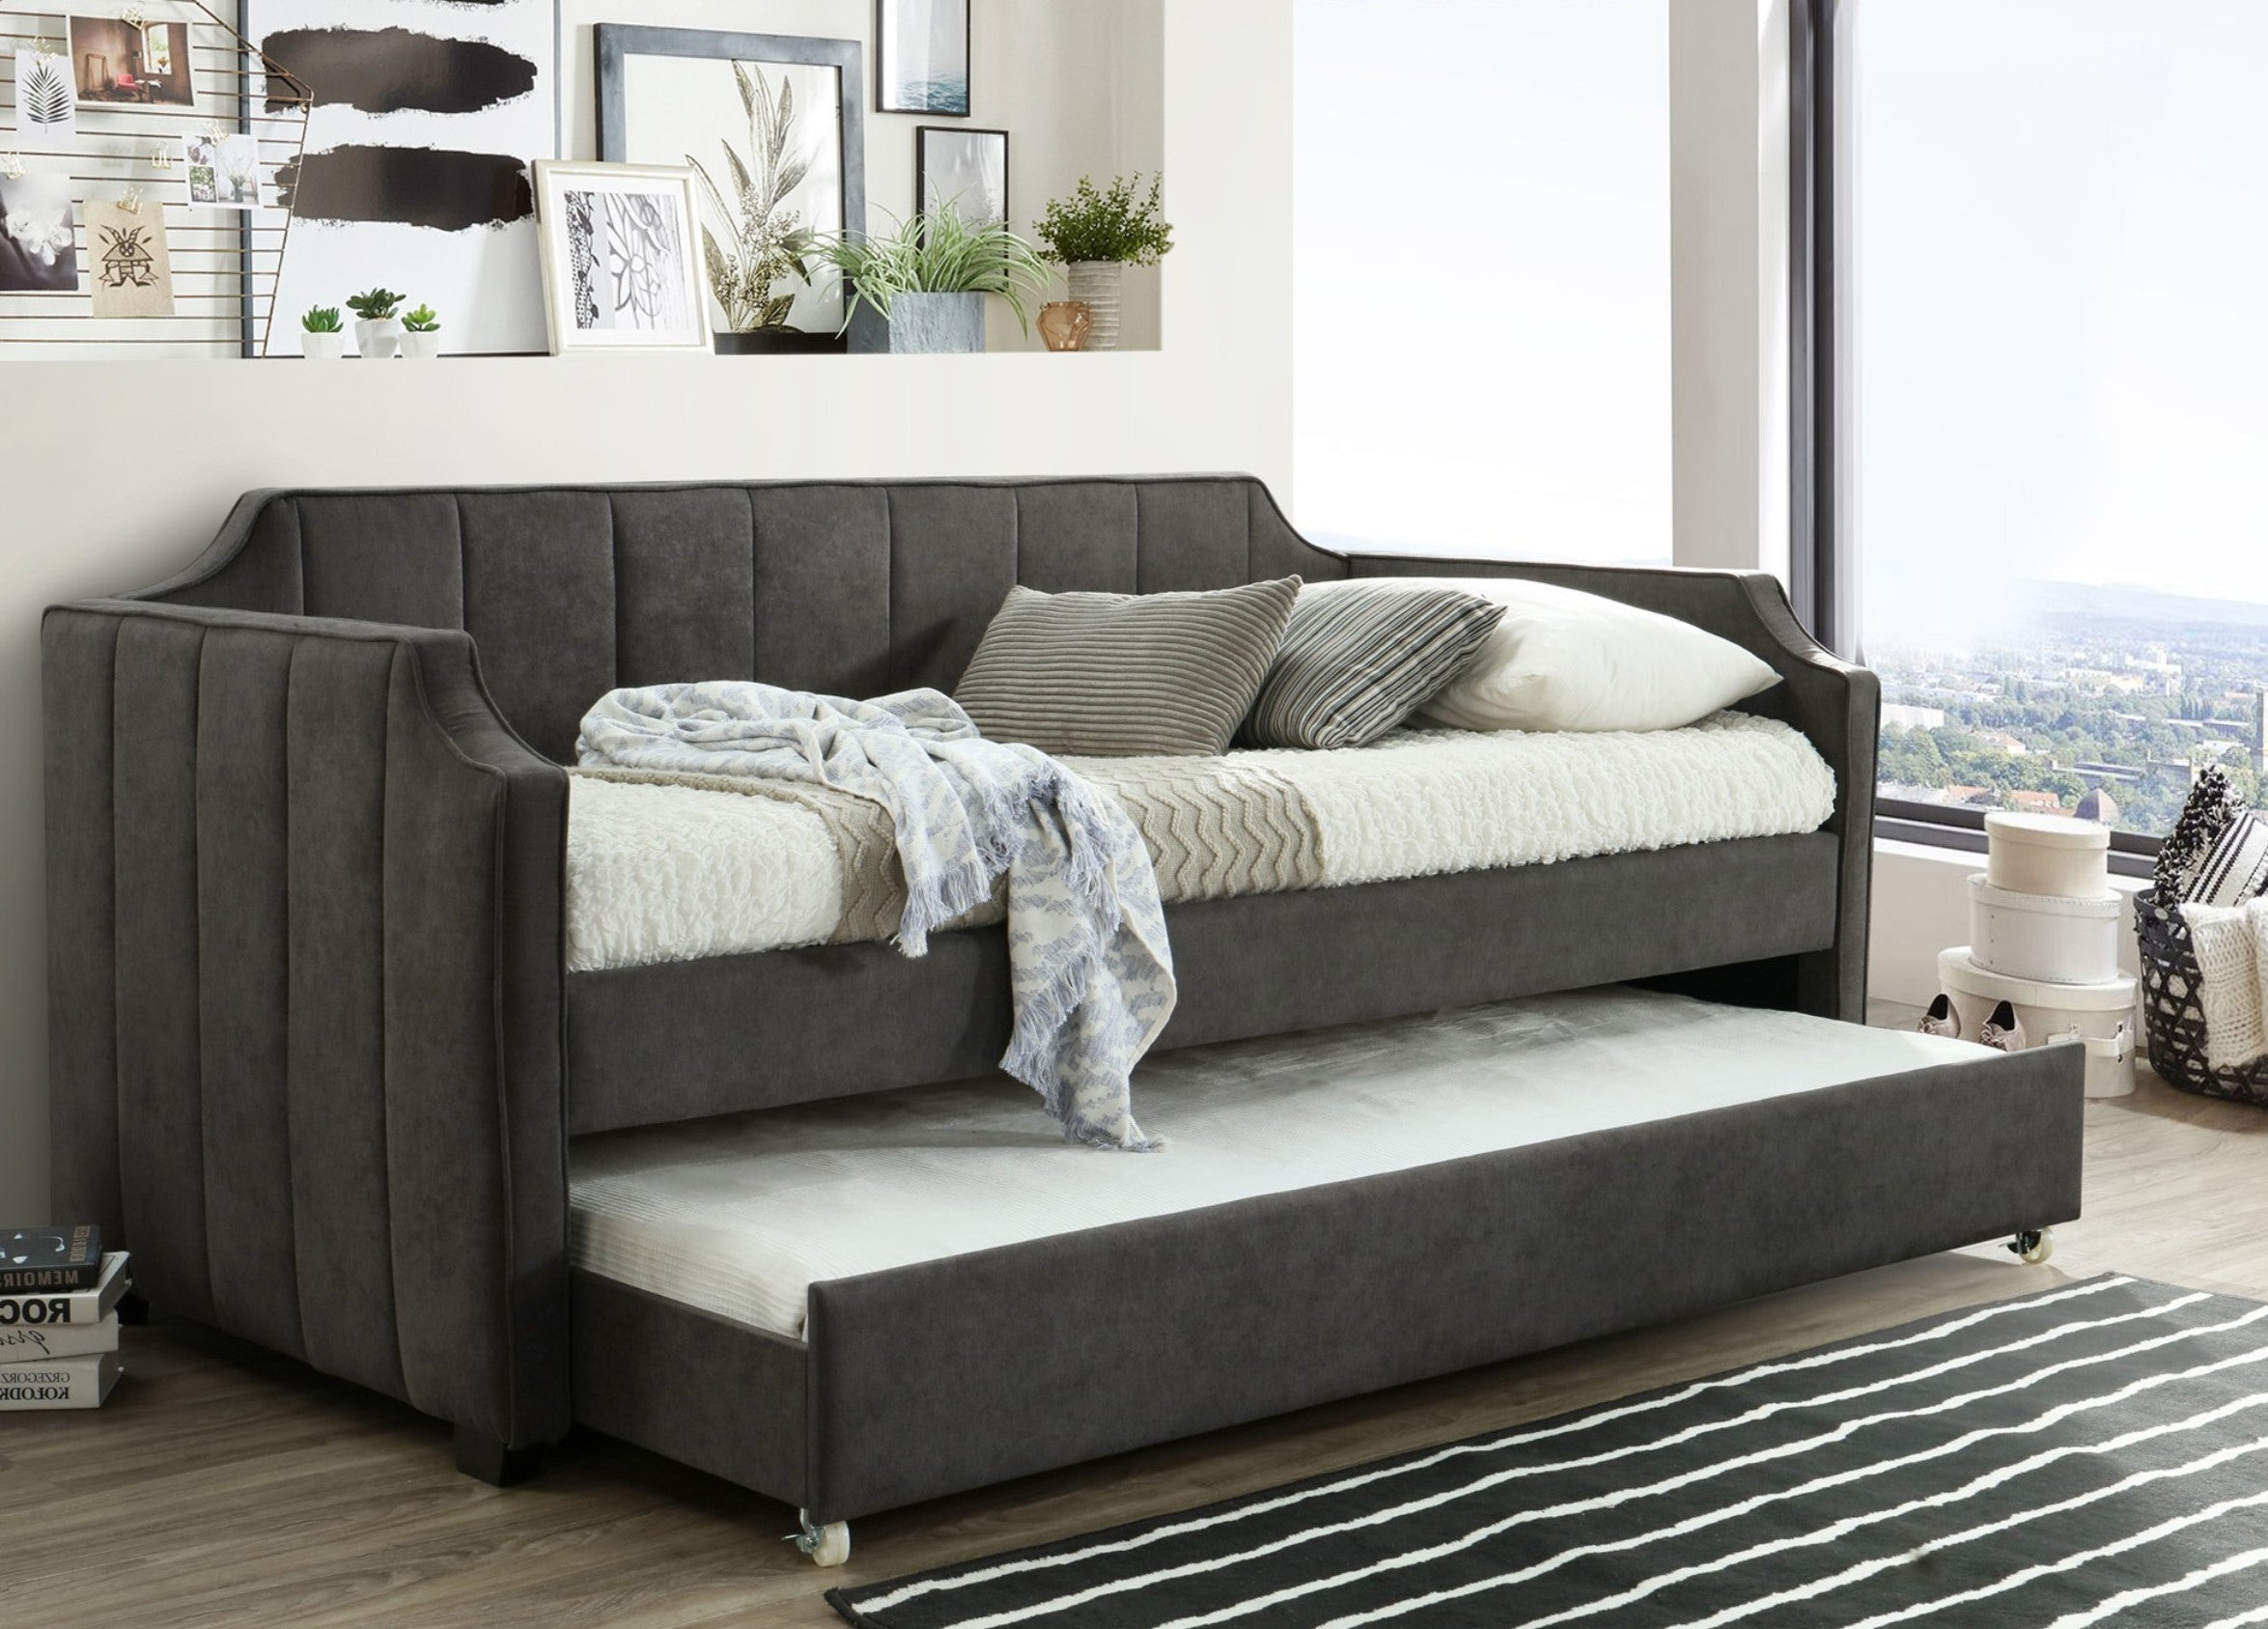 Lemor Single Day Bed with Pull out Trundle